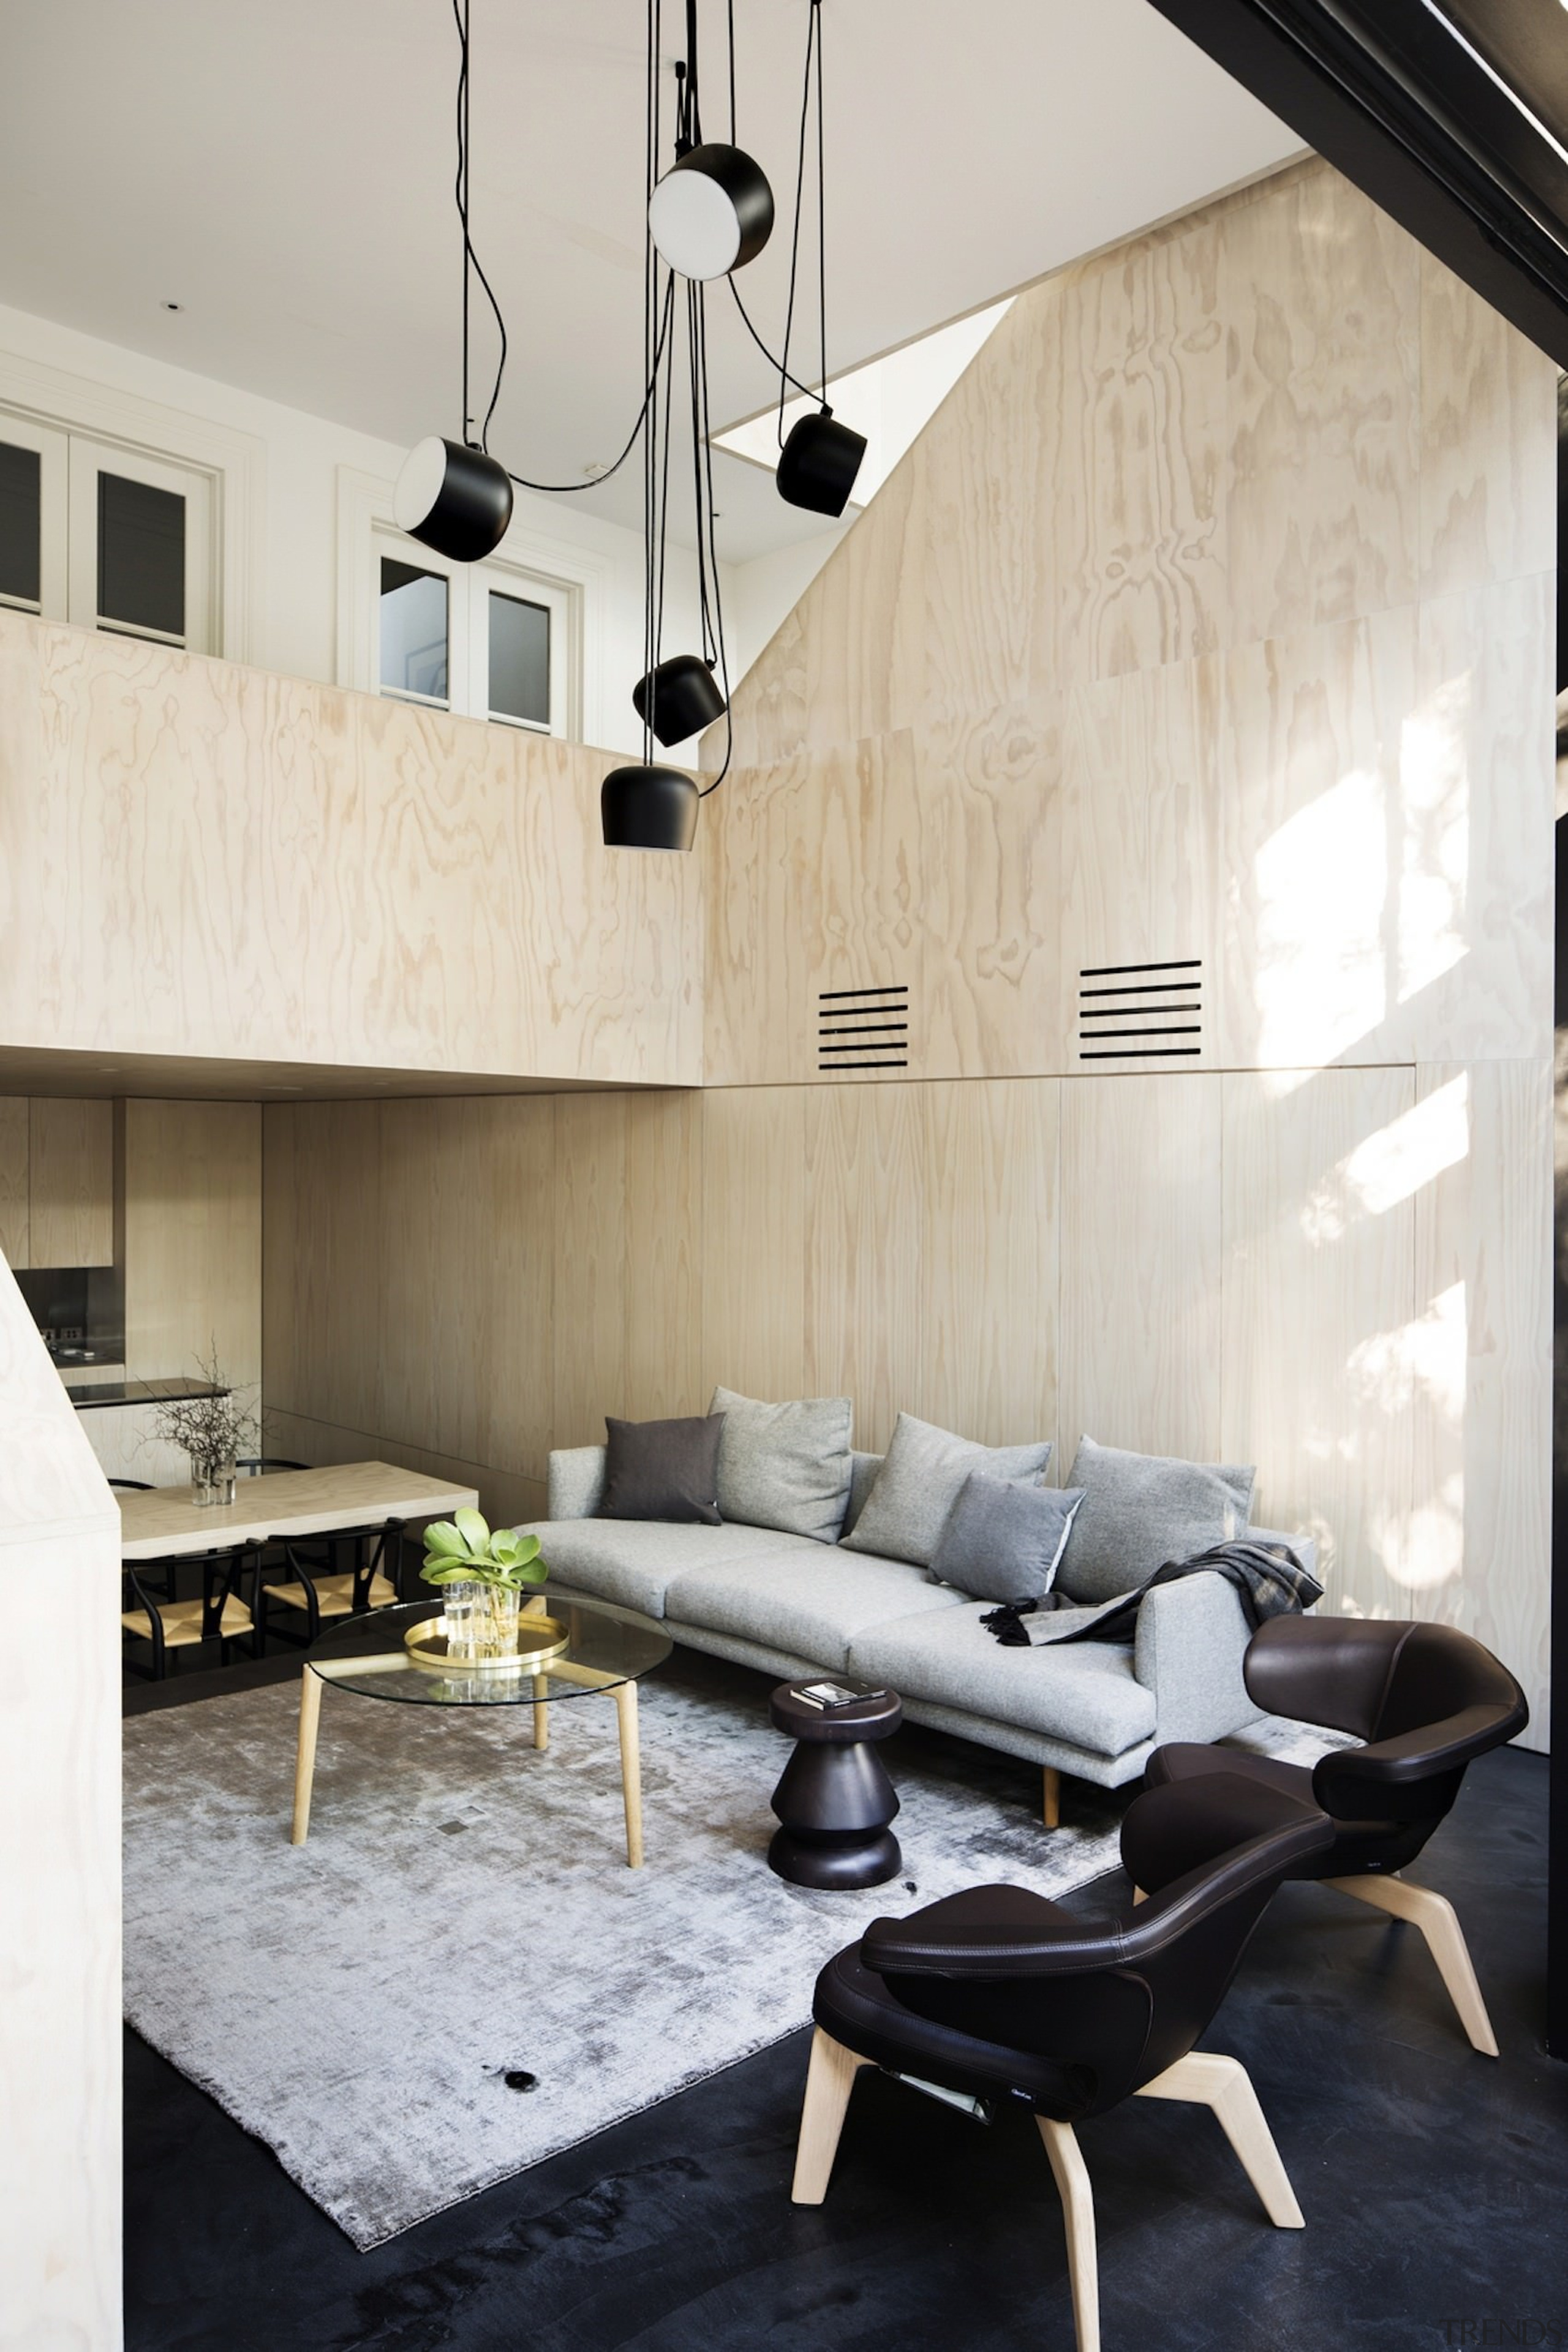 Architect: Architect PrineasPhotography by Chris Warnes architecture, ceiling, chair, floor, furniture, home, house, interior design, light fixture, living room, product design, table, gray